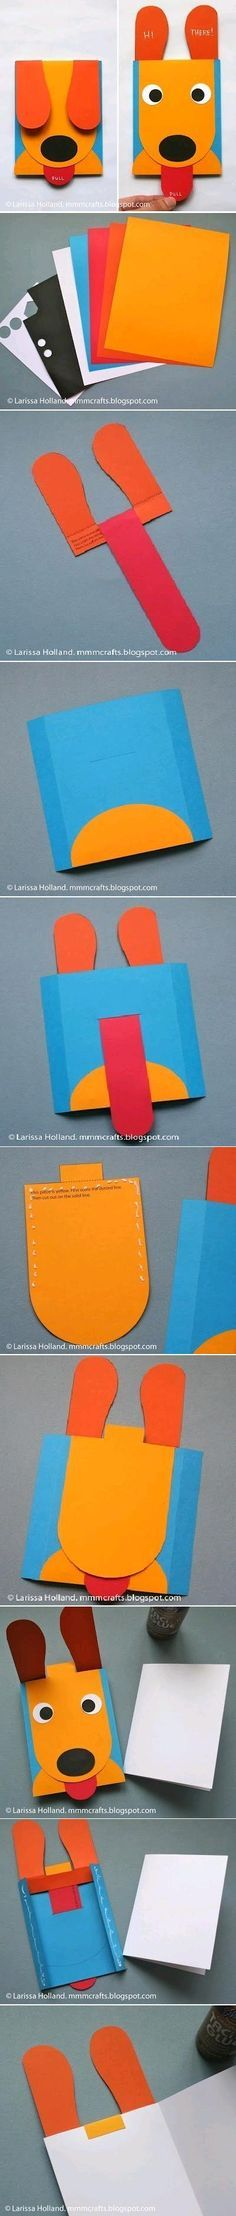 Tarjetas perro, divertida idea para un regalo - Dog cards, fun idea for a gift.